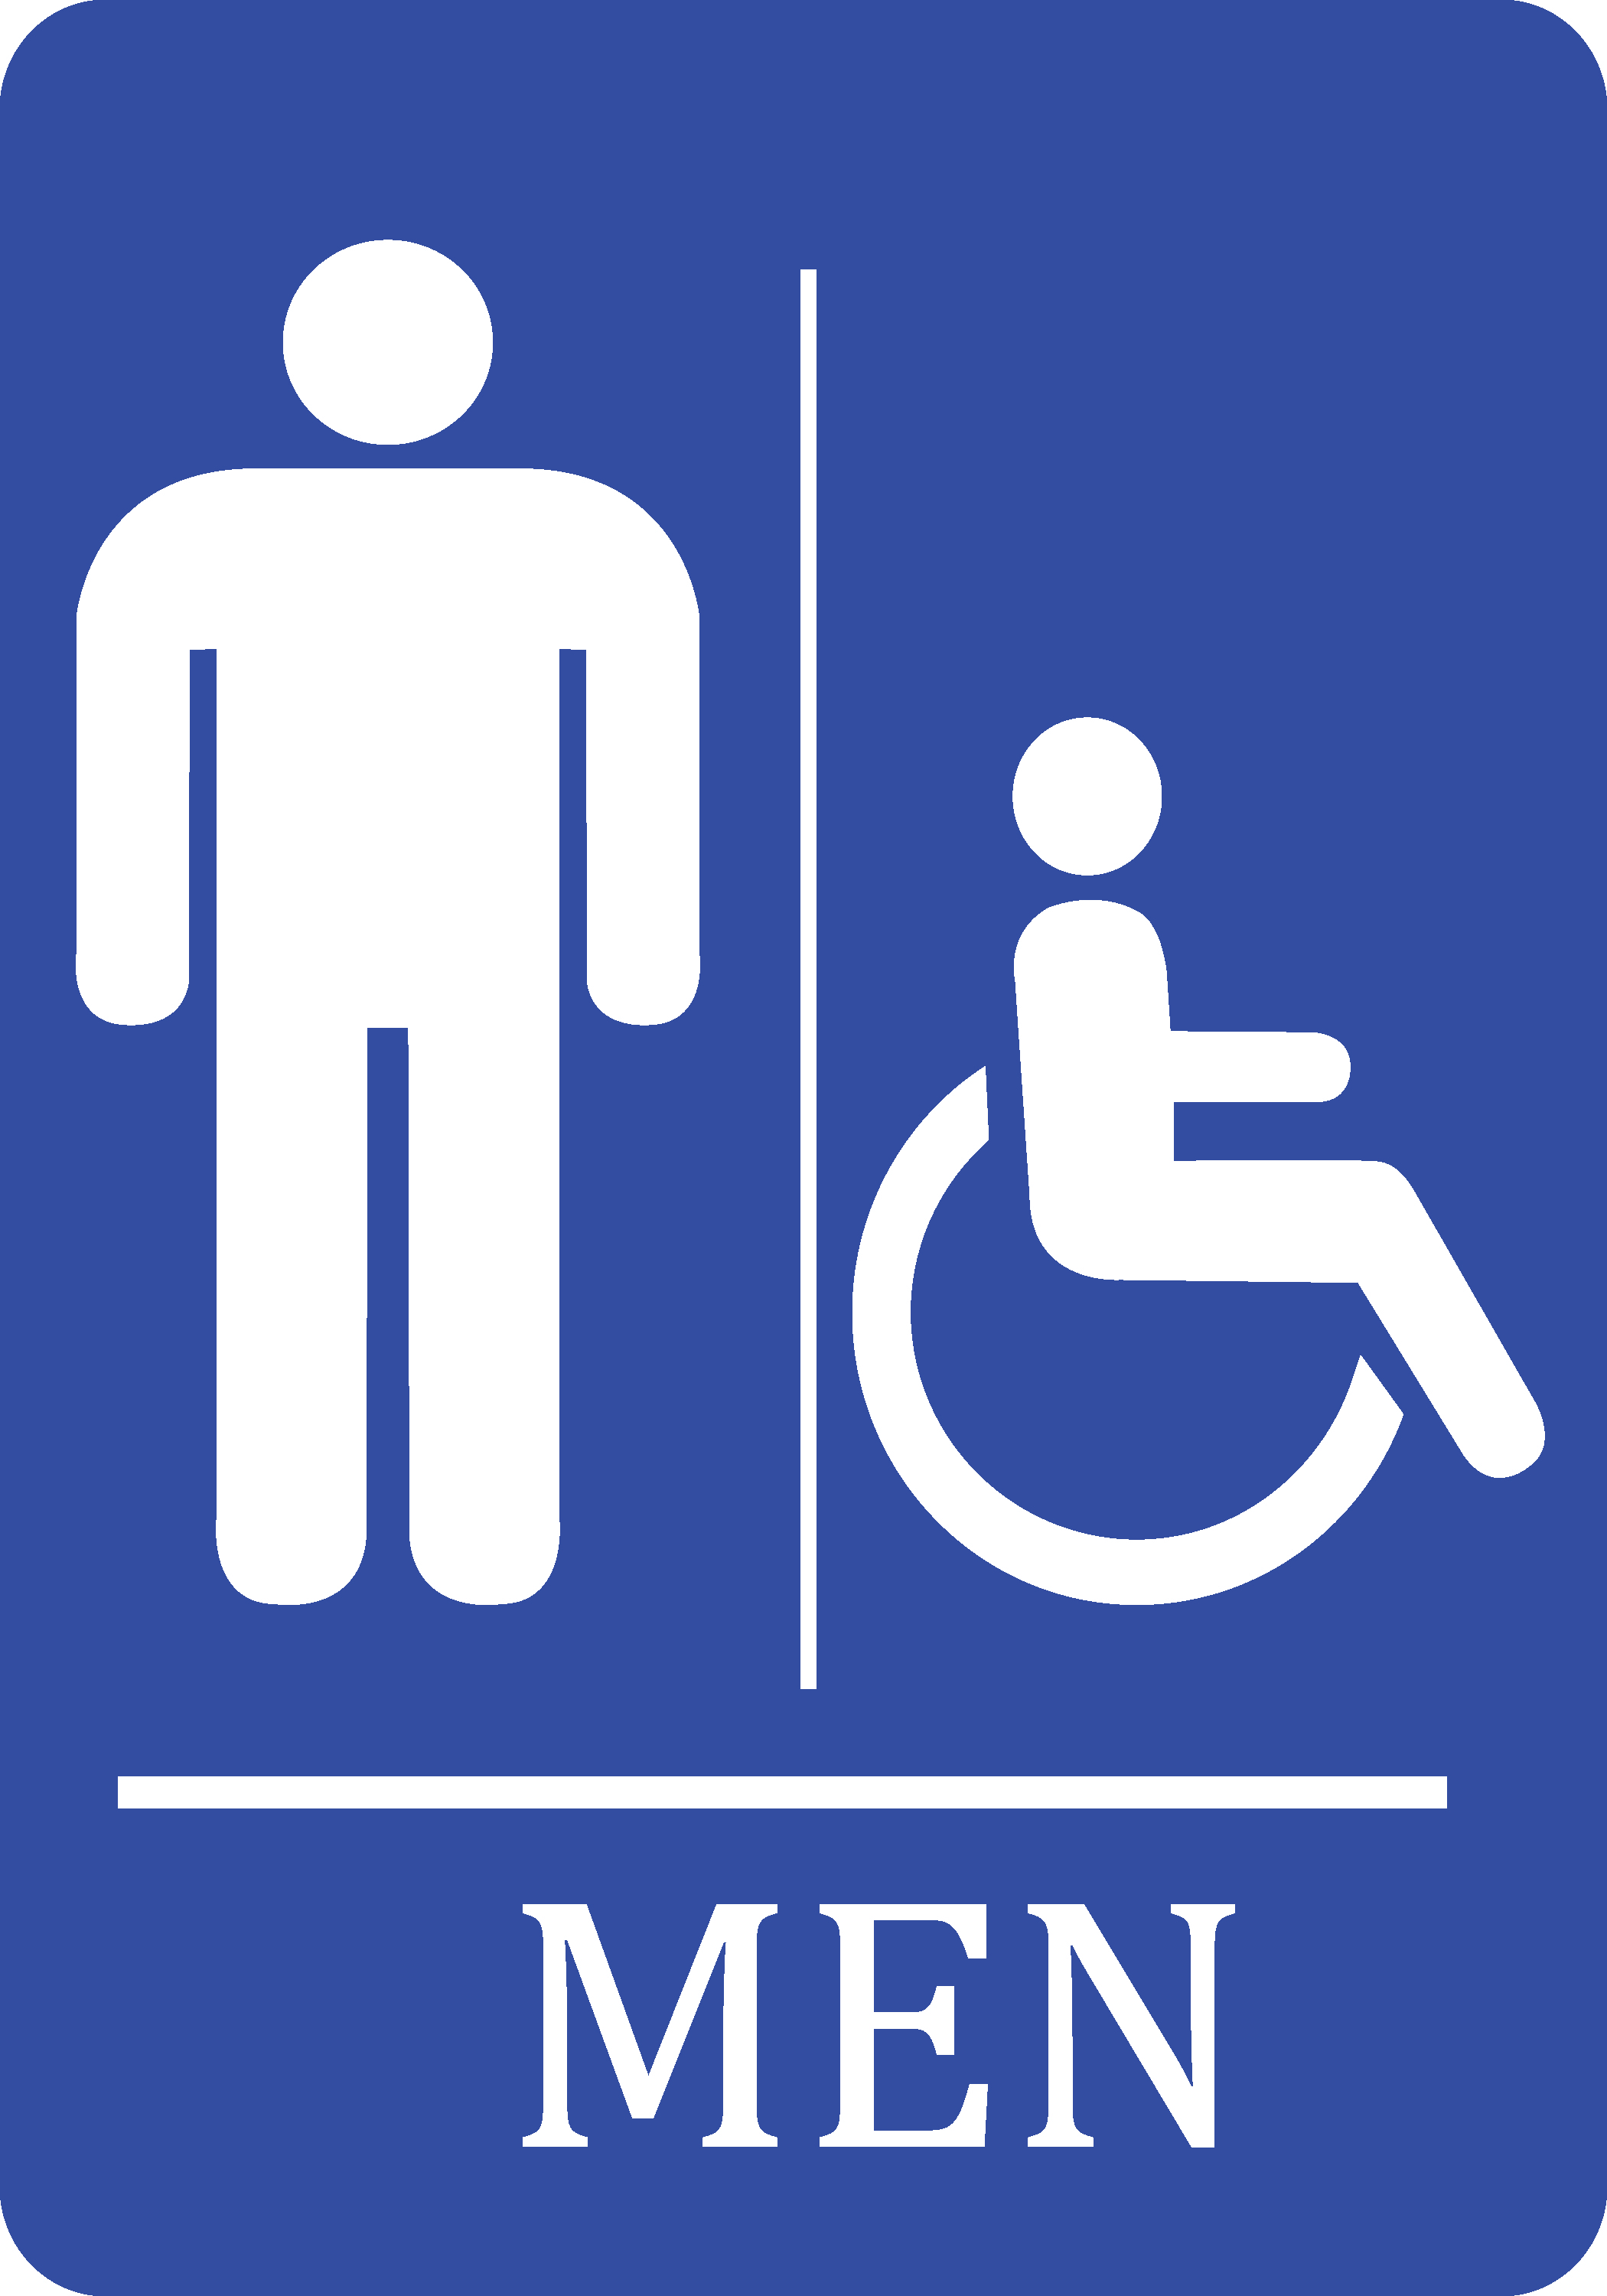 Mens Bathroom Handicap Accessible Blue Sign   Men Restroom Sign XL Signs  Plastic, 12x18   Walmart.com